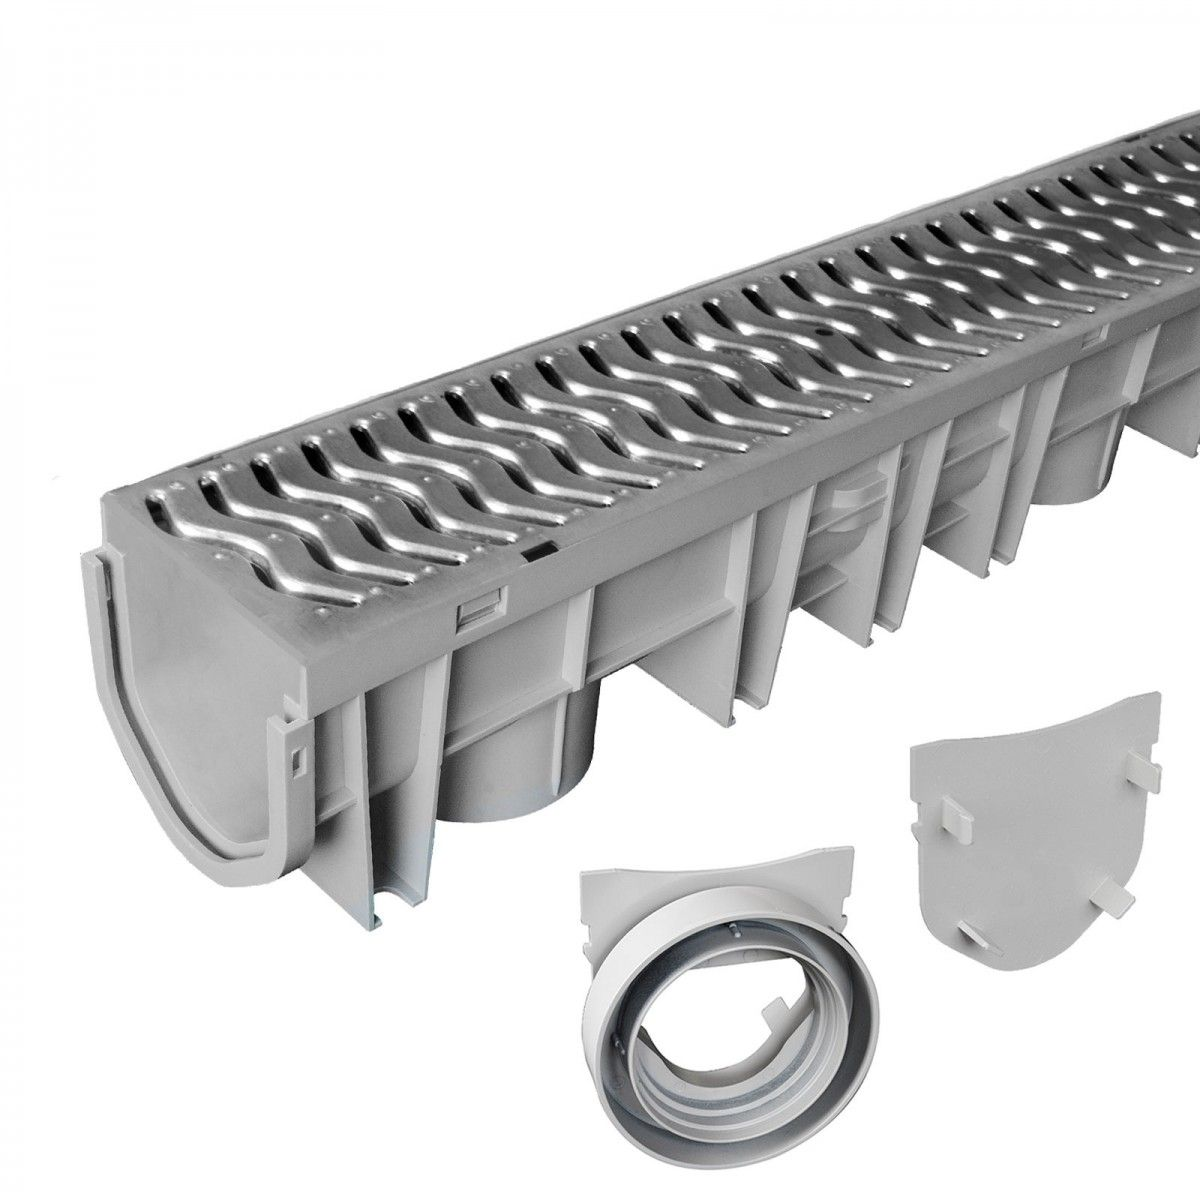 Source 1 Drainage S1e Glvch Trench Driveway Channel Drain Kit With Galvanized Steel Grate Drainage Galvanized Steel Trench Drain Systems